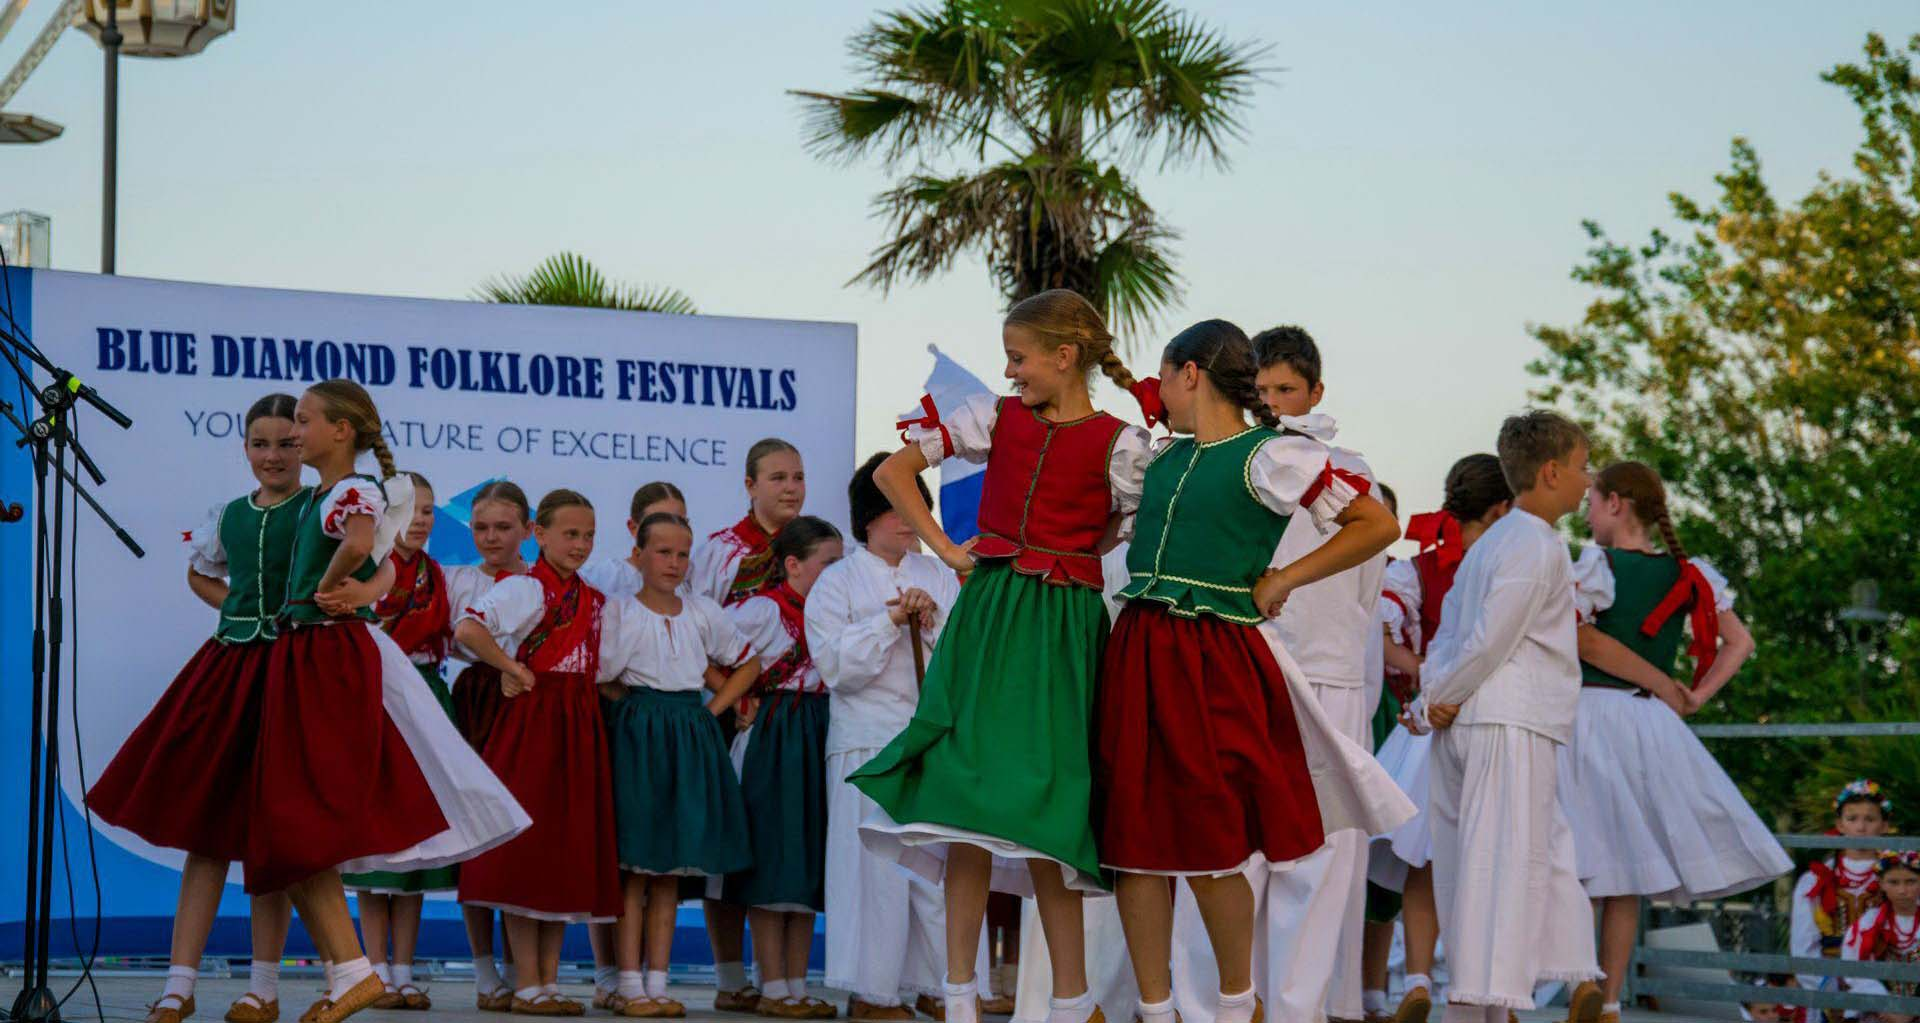 Summer folklore festival Prague